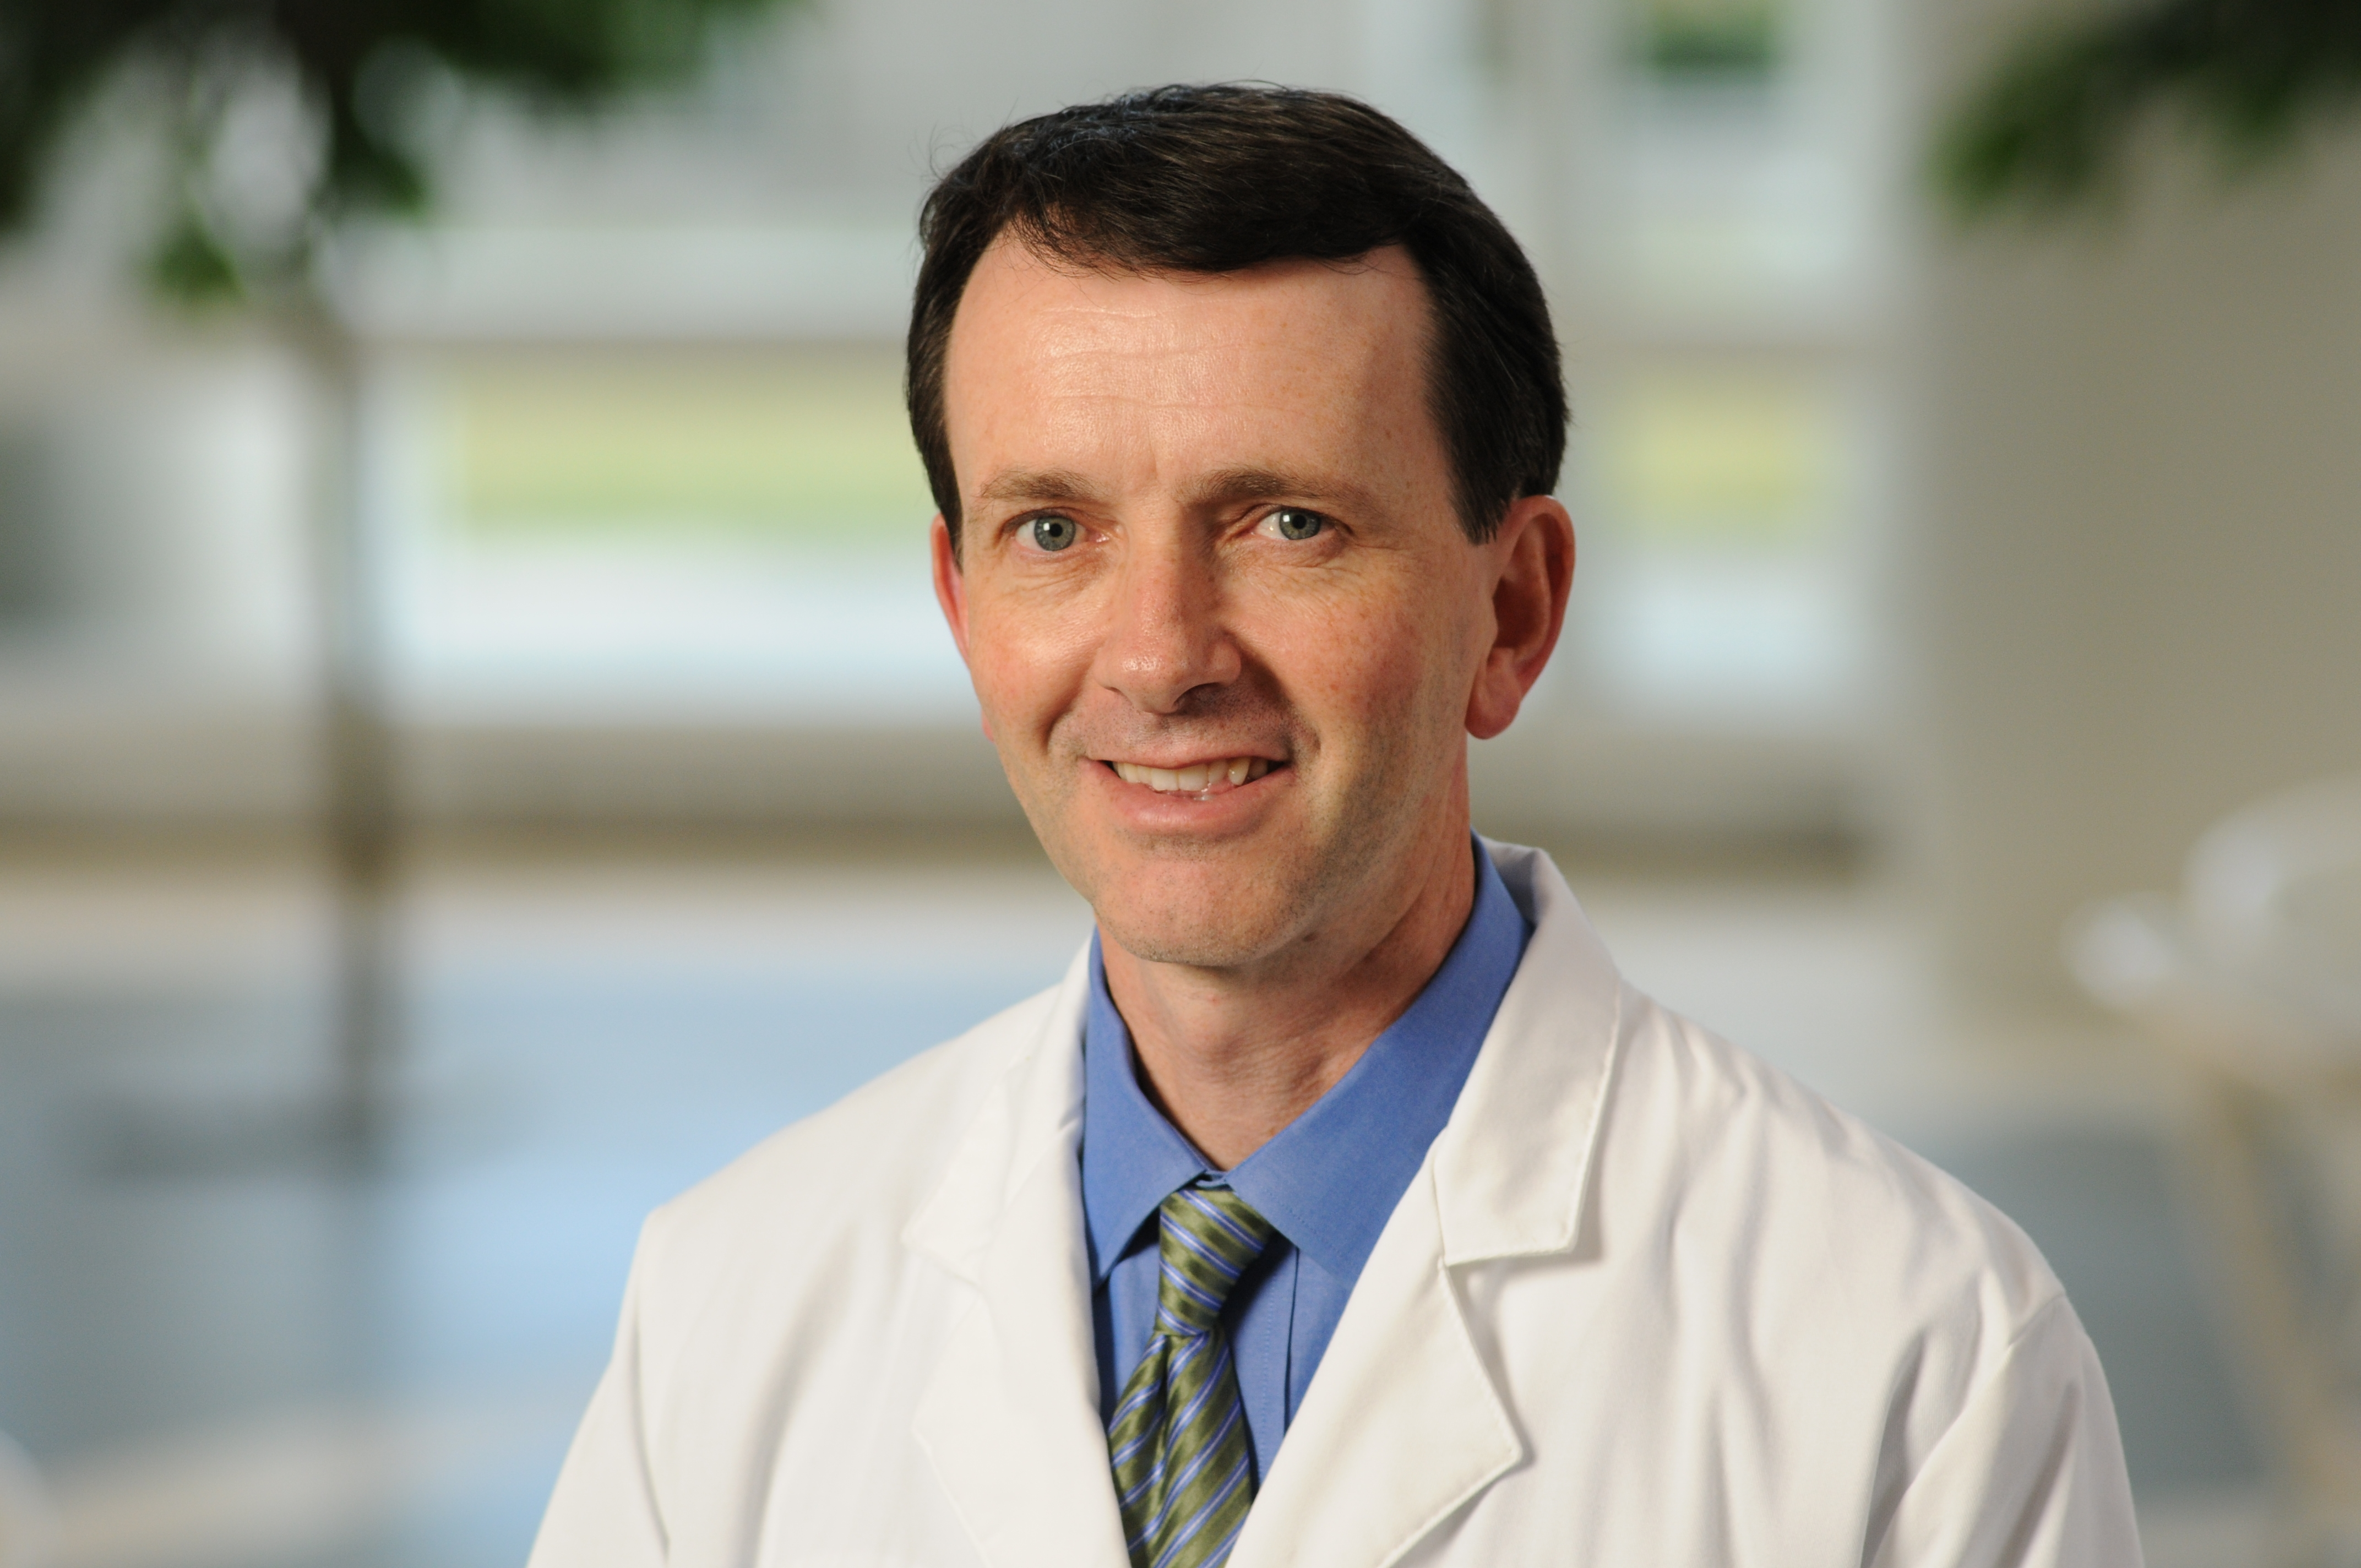 Andrew Muir, MD